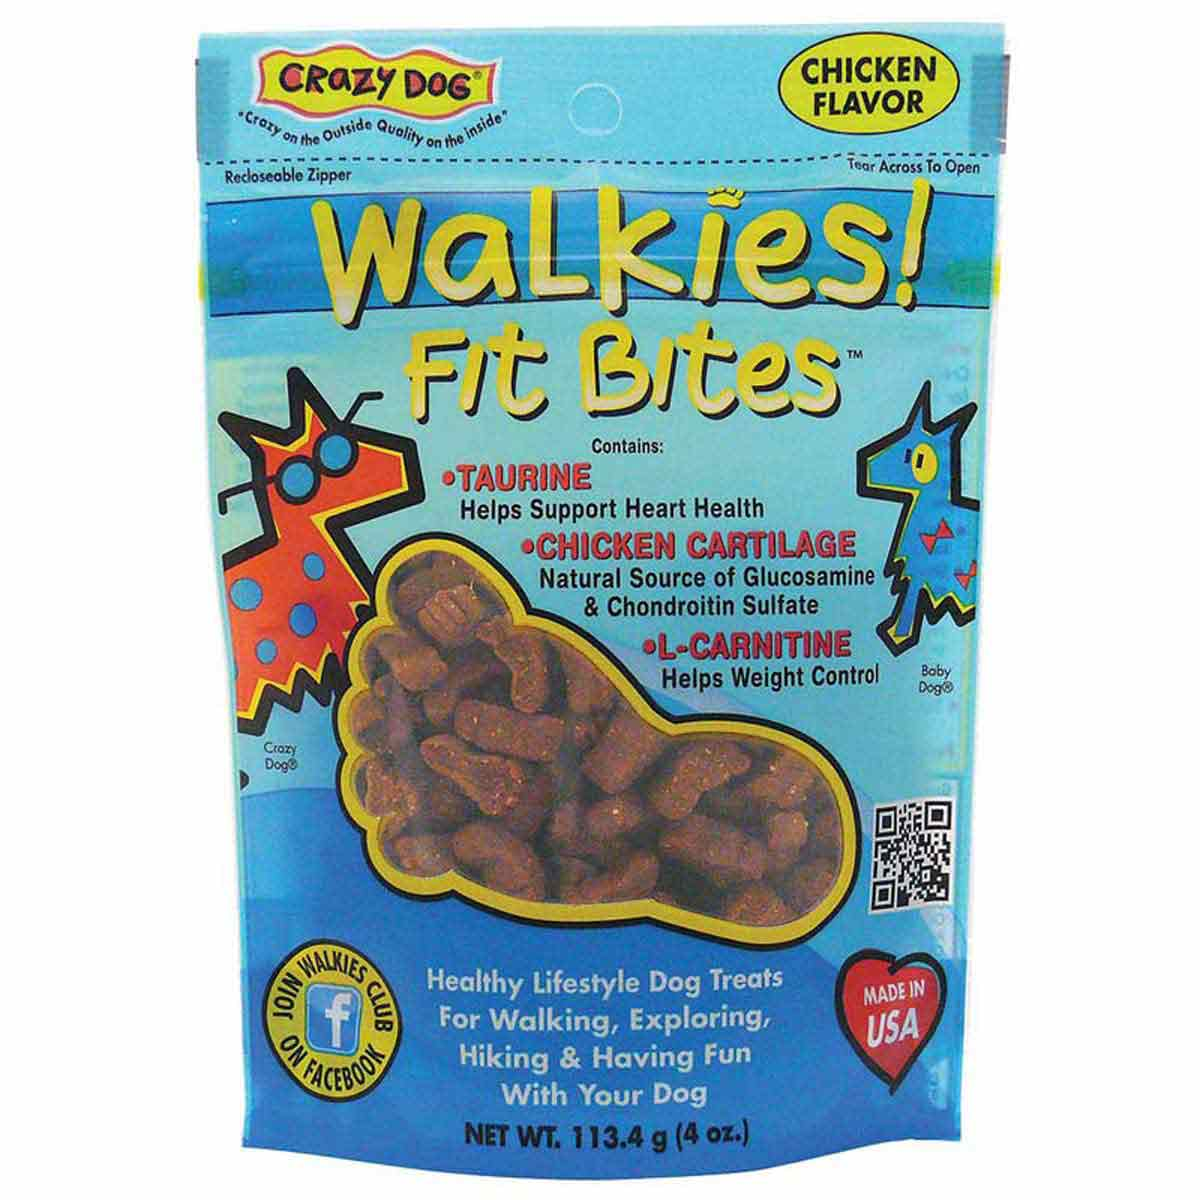 Crazy Dog Walkies! Fit Bites Chicken Treats - 4 ounces